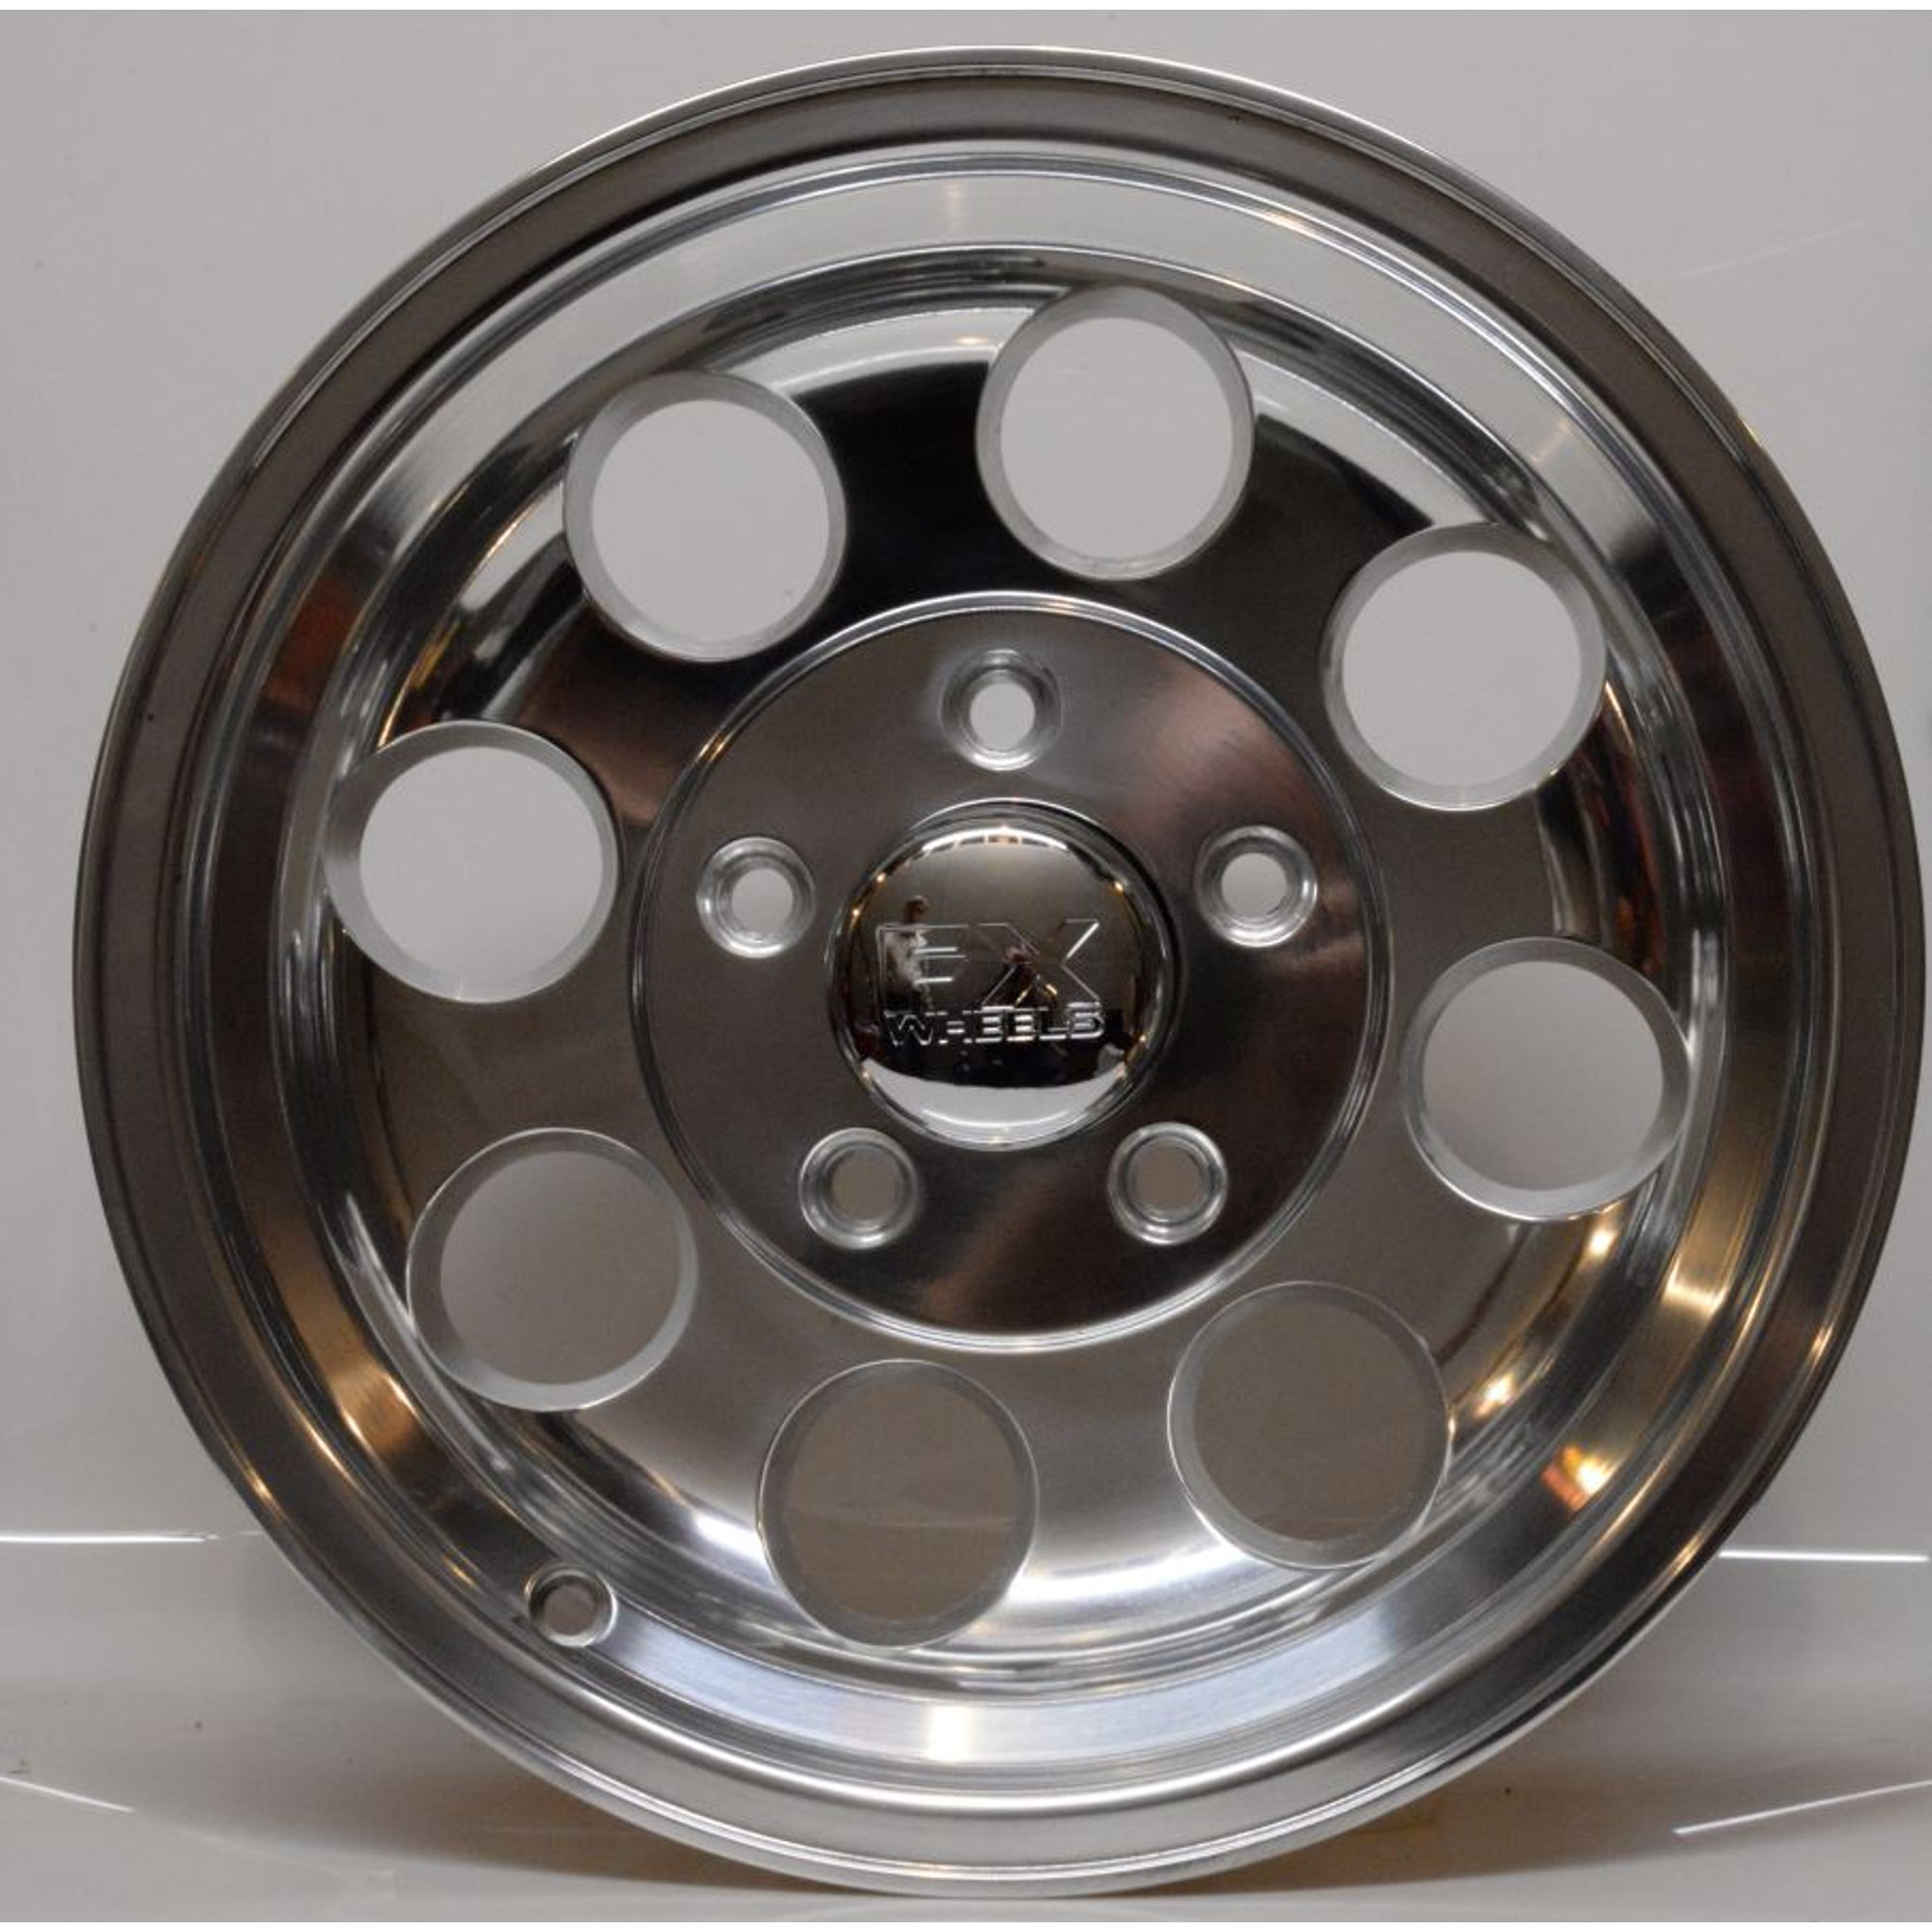 Fx wheels 308 5865p wheel 308 series walmart canada